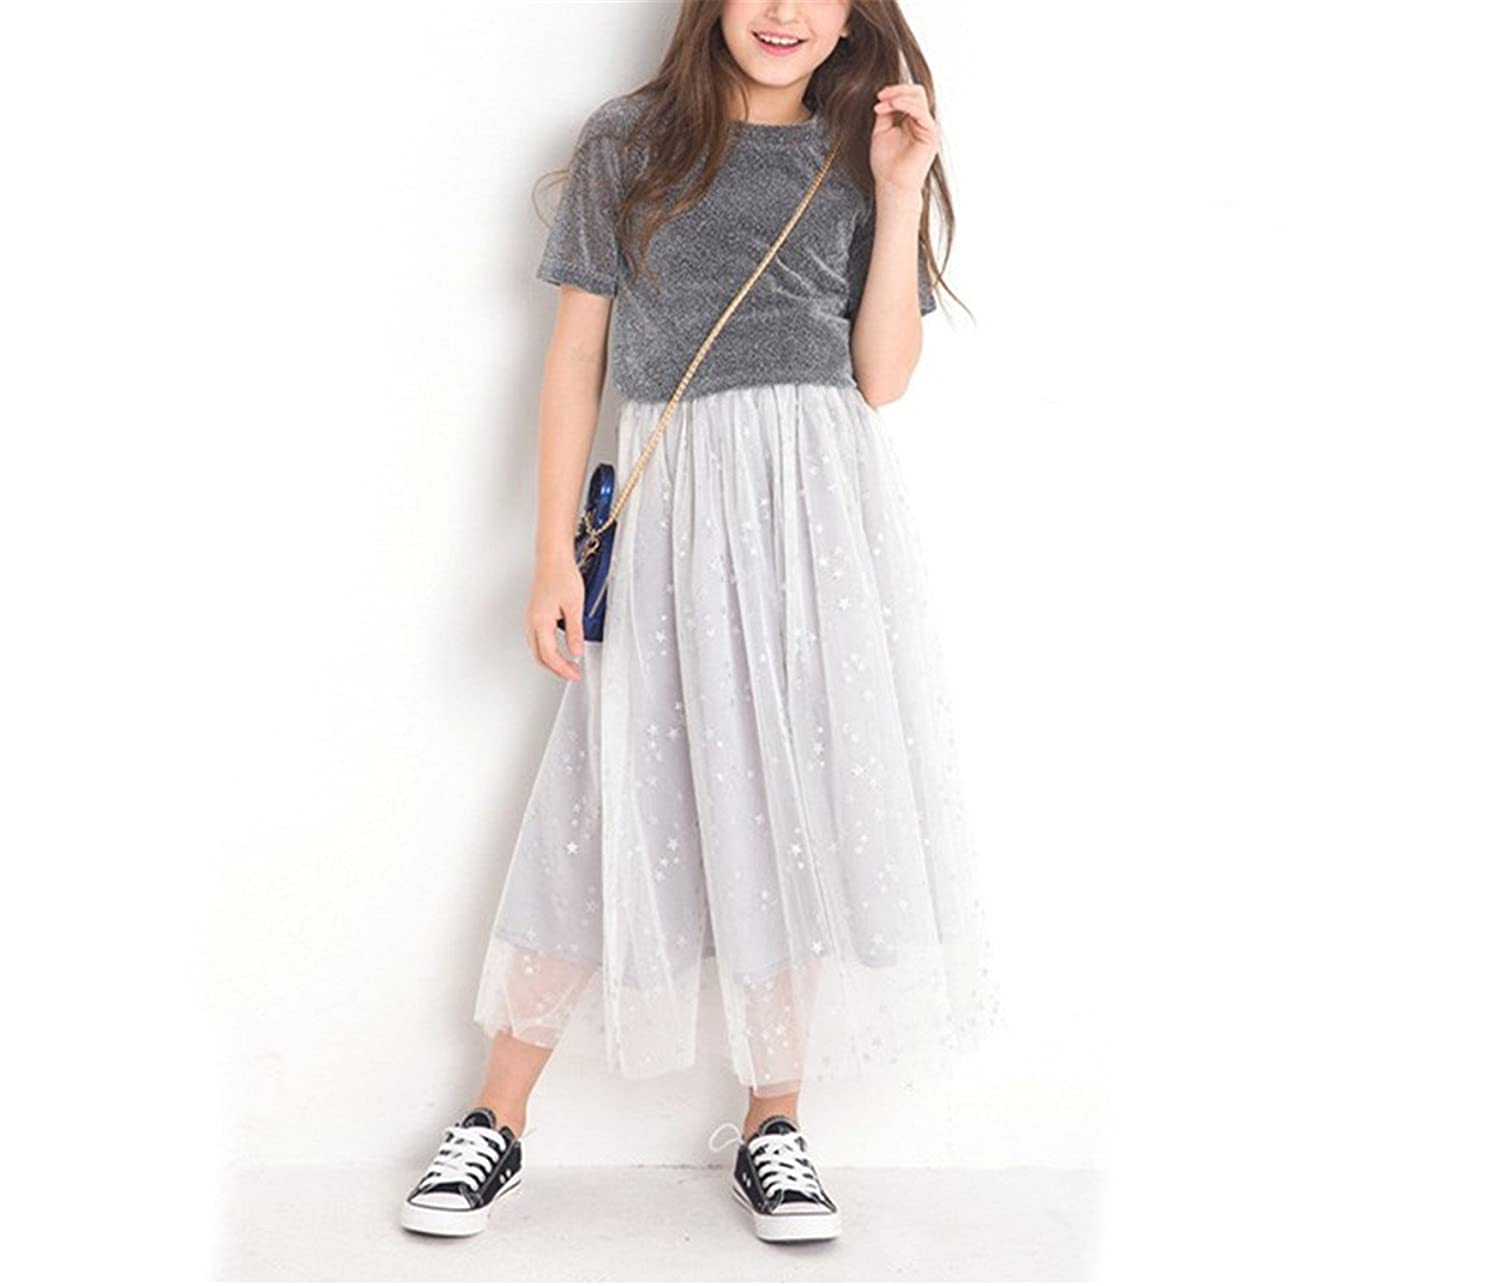 Nerefy Girls 2 Pieces Clothing Set Skirt Top Tee Short Sleeve Solid Mesh